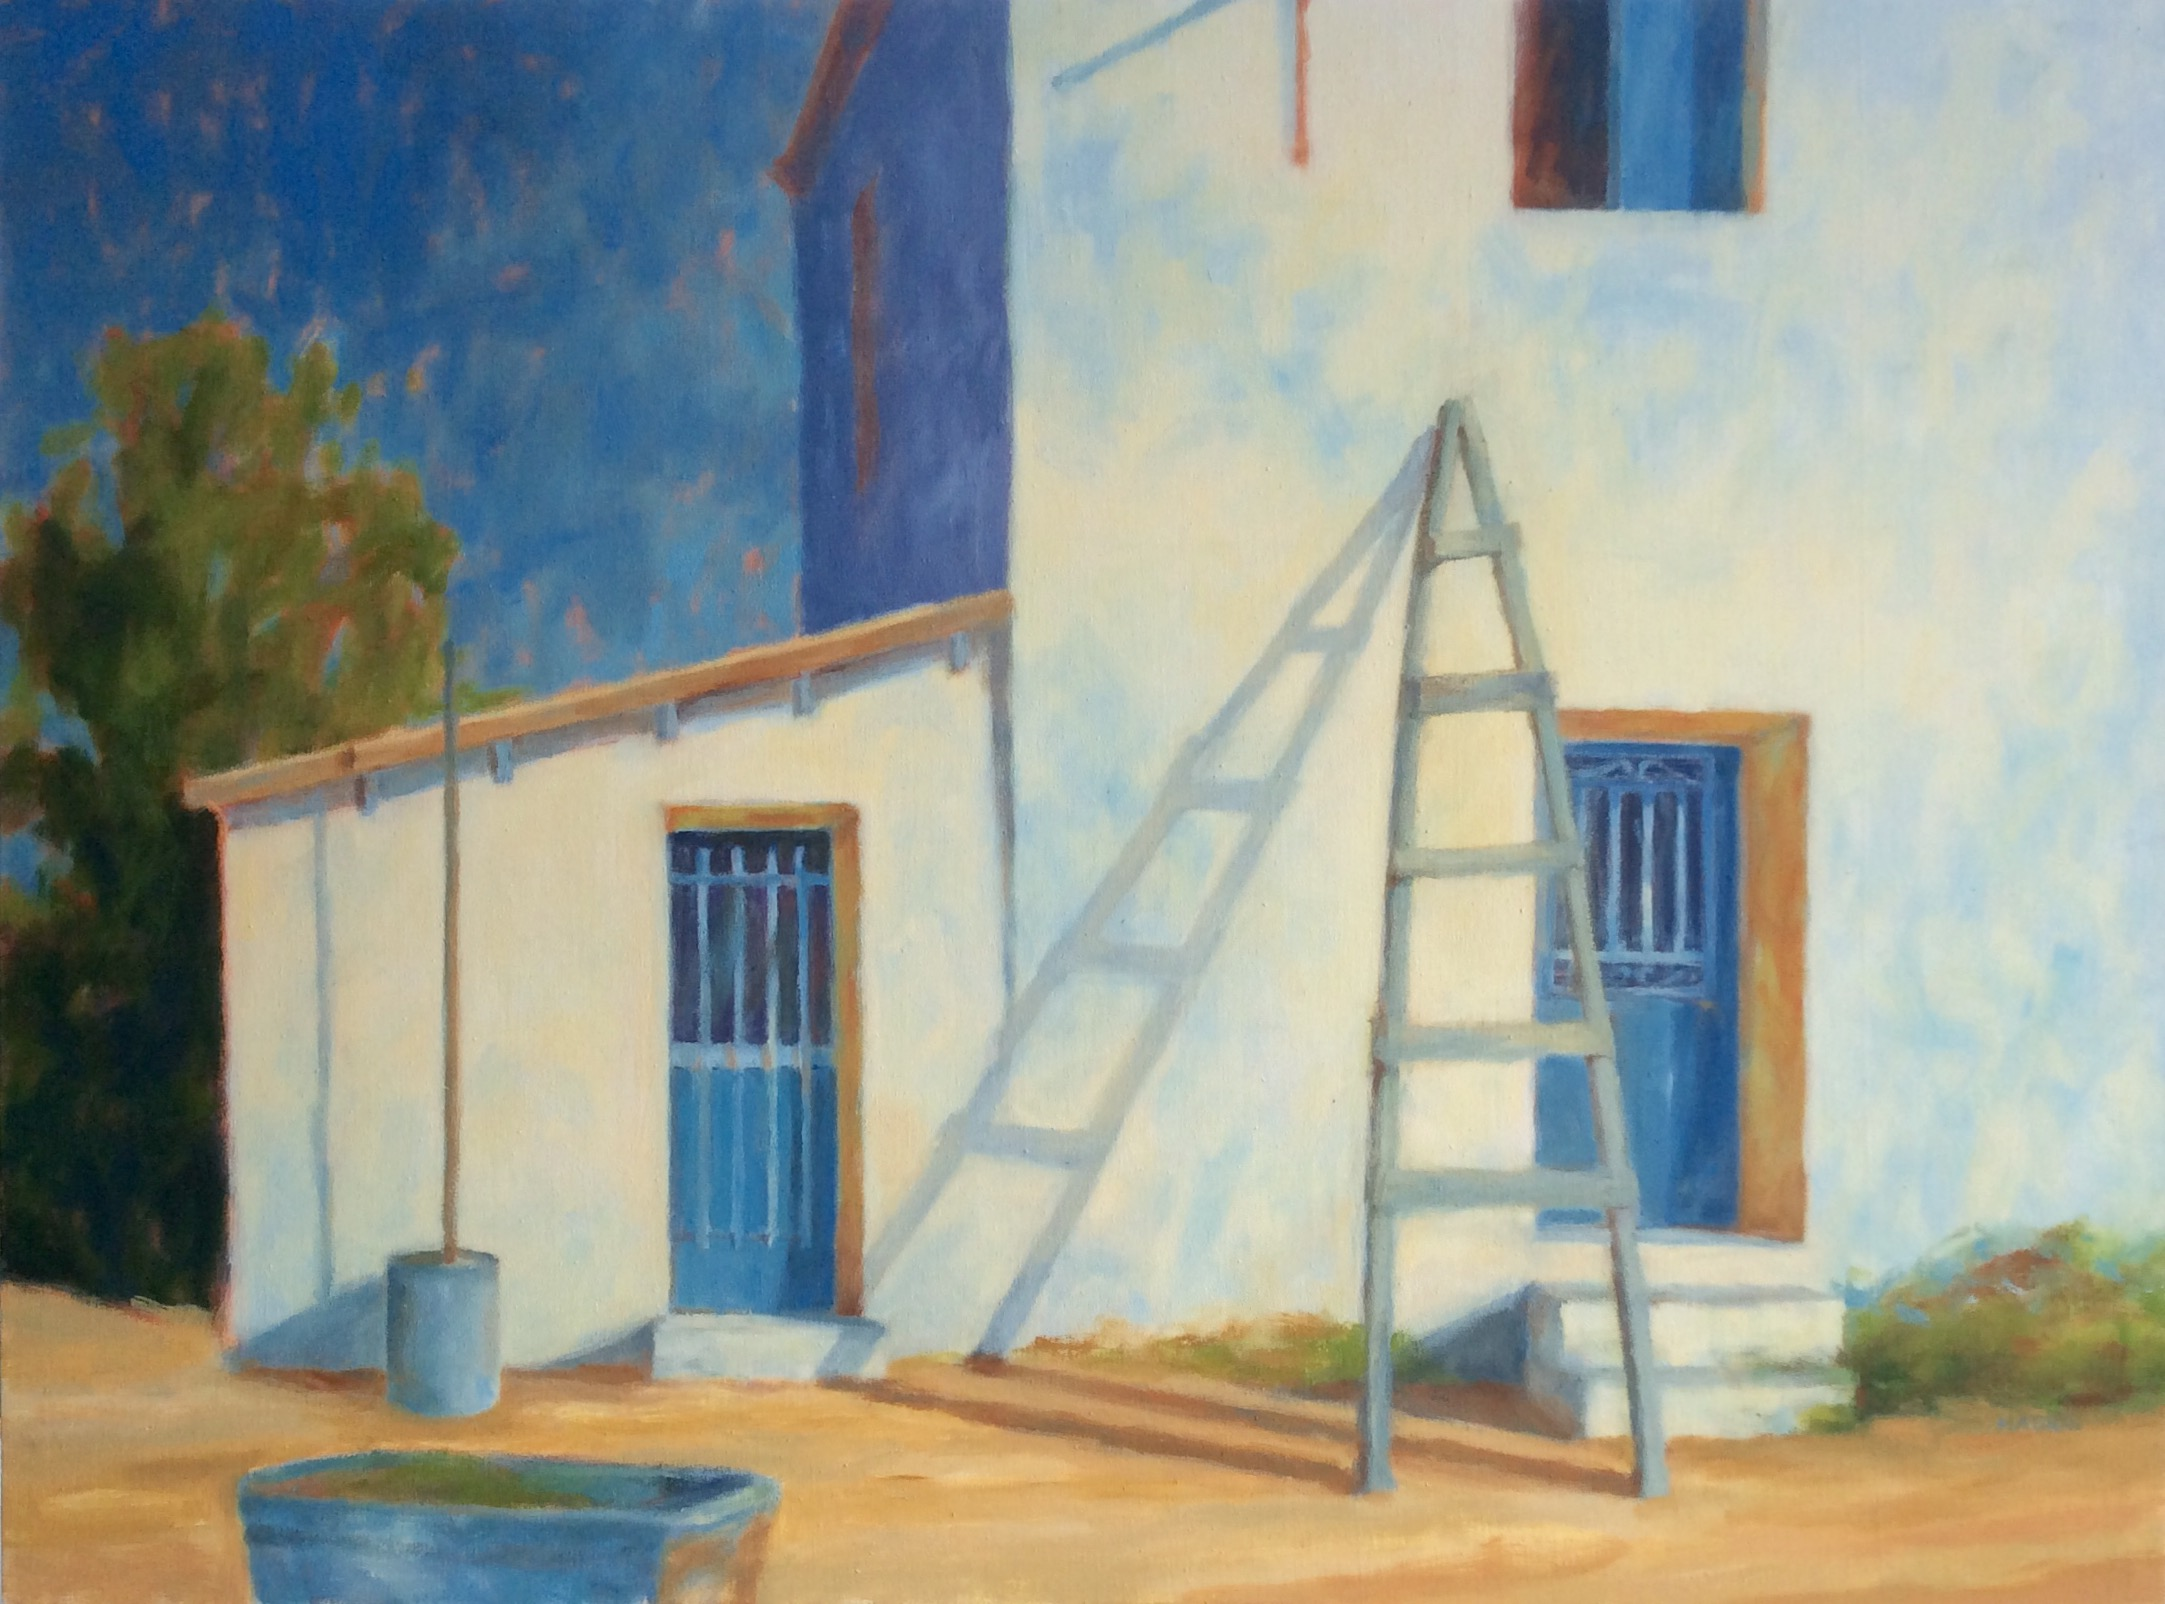 House with Ladder, Metohi